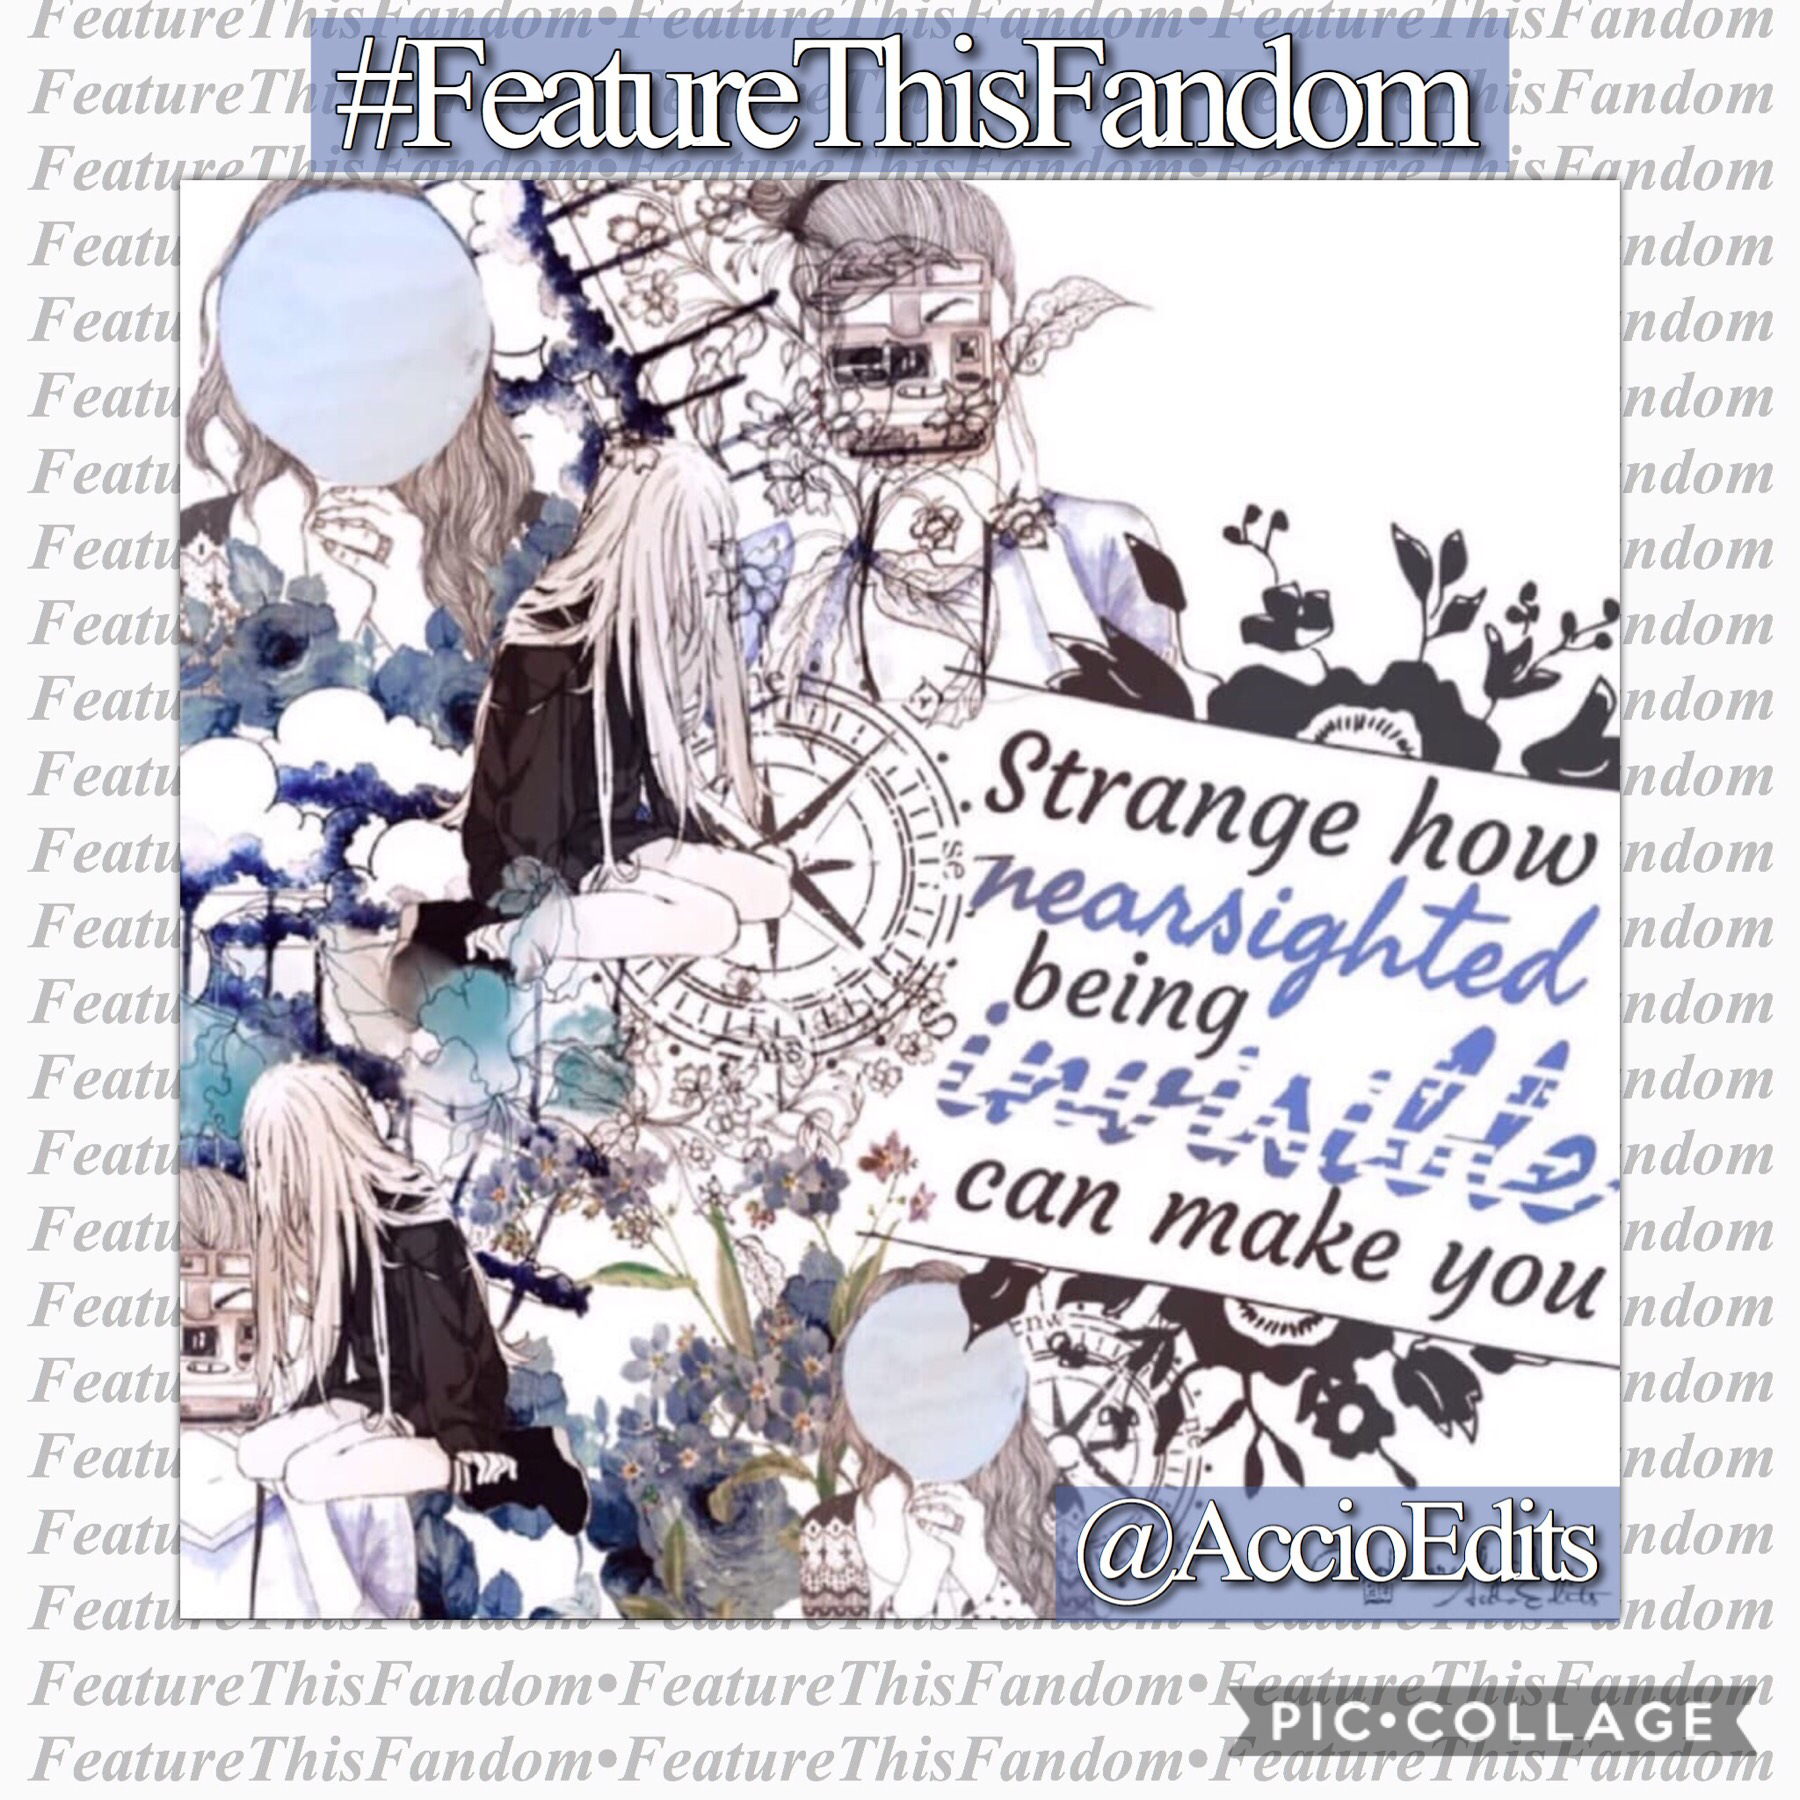 (8/5/2018) Featuring... @AccioEdits!! This account makes gorgeous Harry Potter edits for all you potterheads out there😊 check the remixes to see more from this account 💕